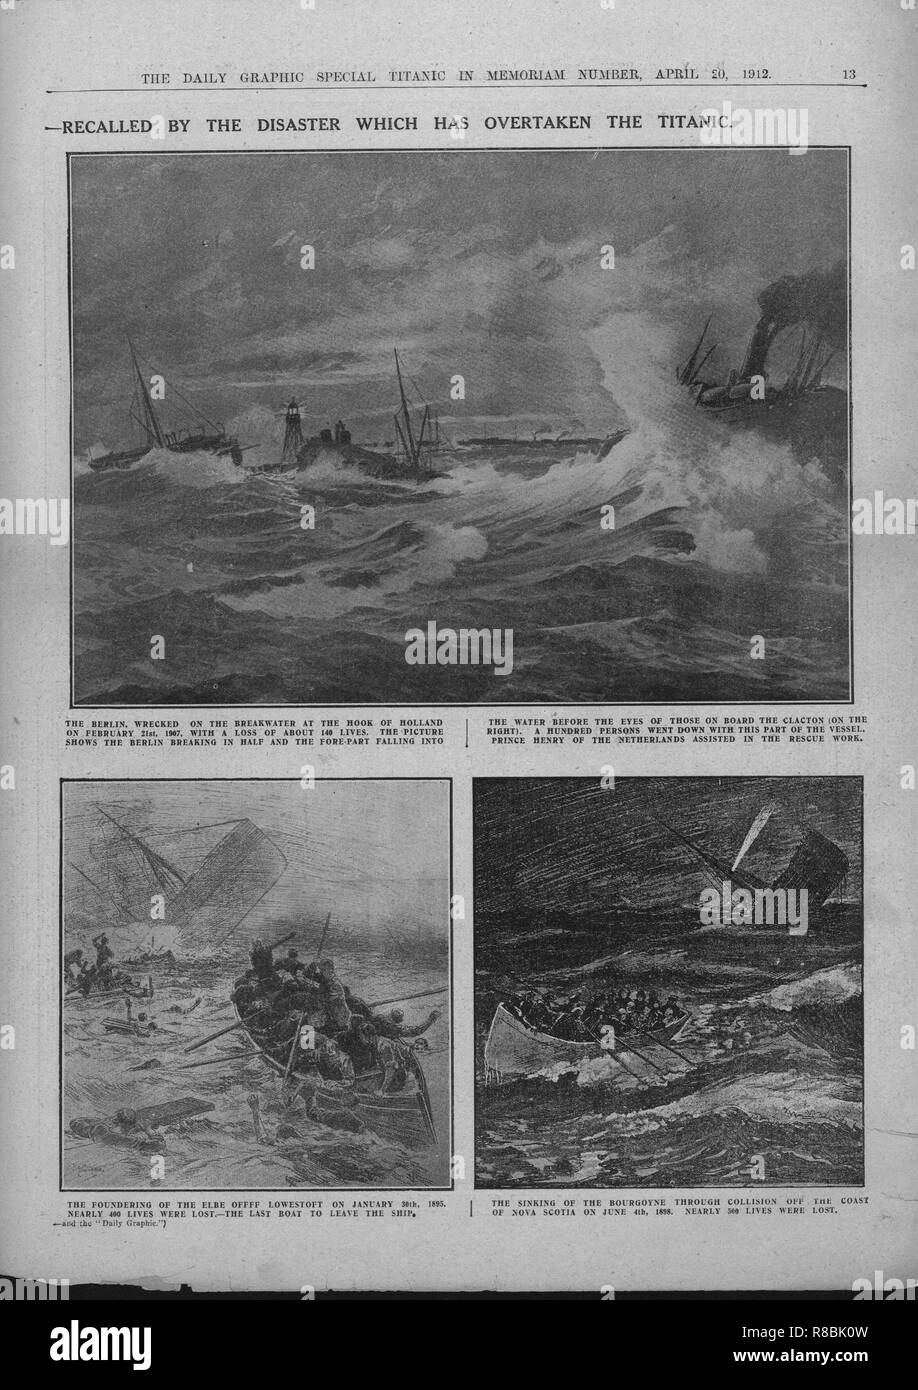 """'Famous Wrecks of Bygone Days: Some Historic Disasters at Sea - Recalled by the Disaster which has Overtaken the Titanic', April 20, 1912. Illustrations of shipwrecks with the loss of many lives: the SS 'Berlin', wrecked off the Hook of Holland on 21 February 1907; the SS 'Elbe' which sank in the North Sea on 30 January 1895, after a collision with another ship; the SS 'La Bourgogne', which also collided with another ship, and sank off Nova Scotia in July 1989. Page 13, from """"Titanic In Memoriam Number"""", a special supplement in """"The Daily Graphic"""" newspaper issued following - Stock Image"""